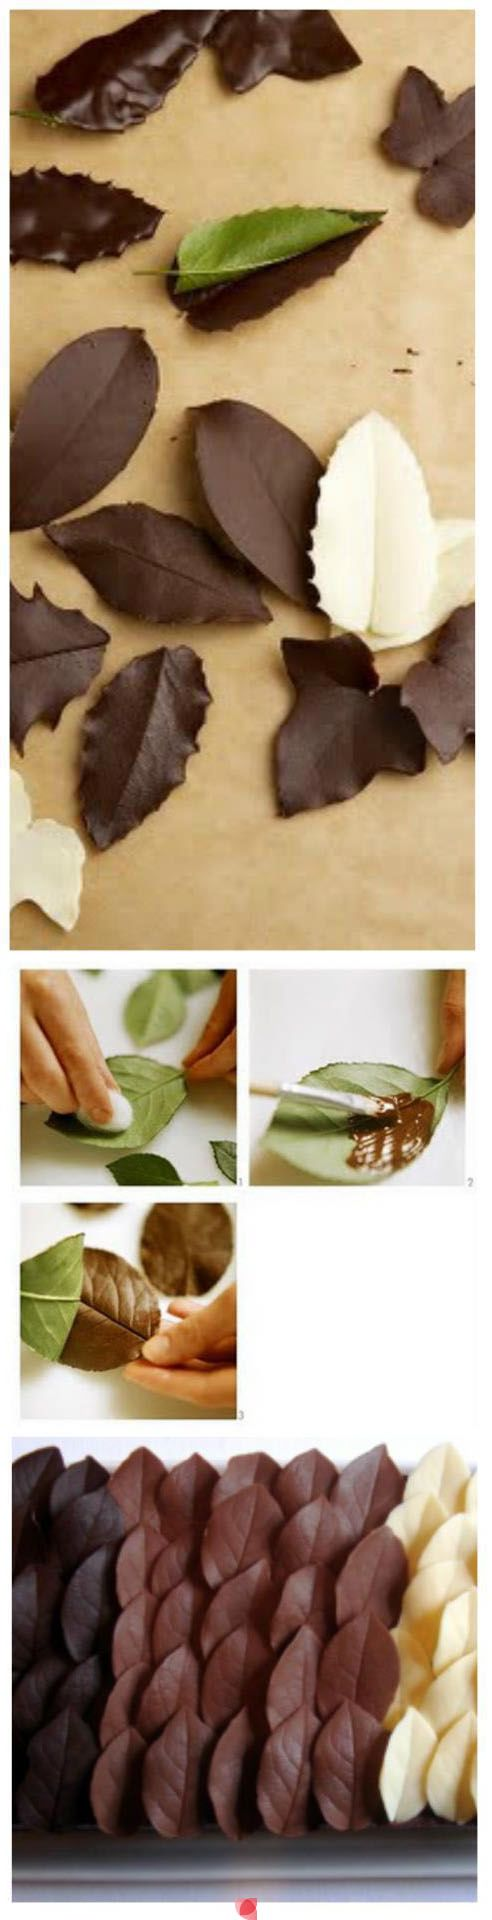 How to make chocolate leaves ~ #chocolate #crafts #gifts #home #yourhomemagazine #sweet